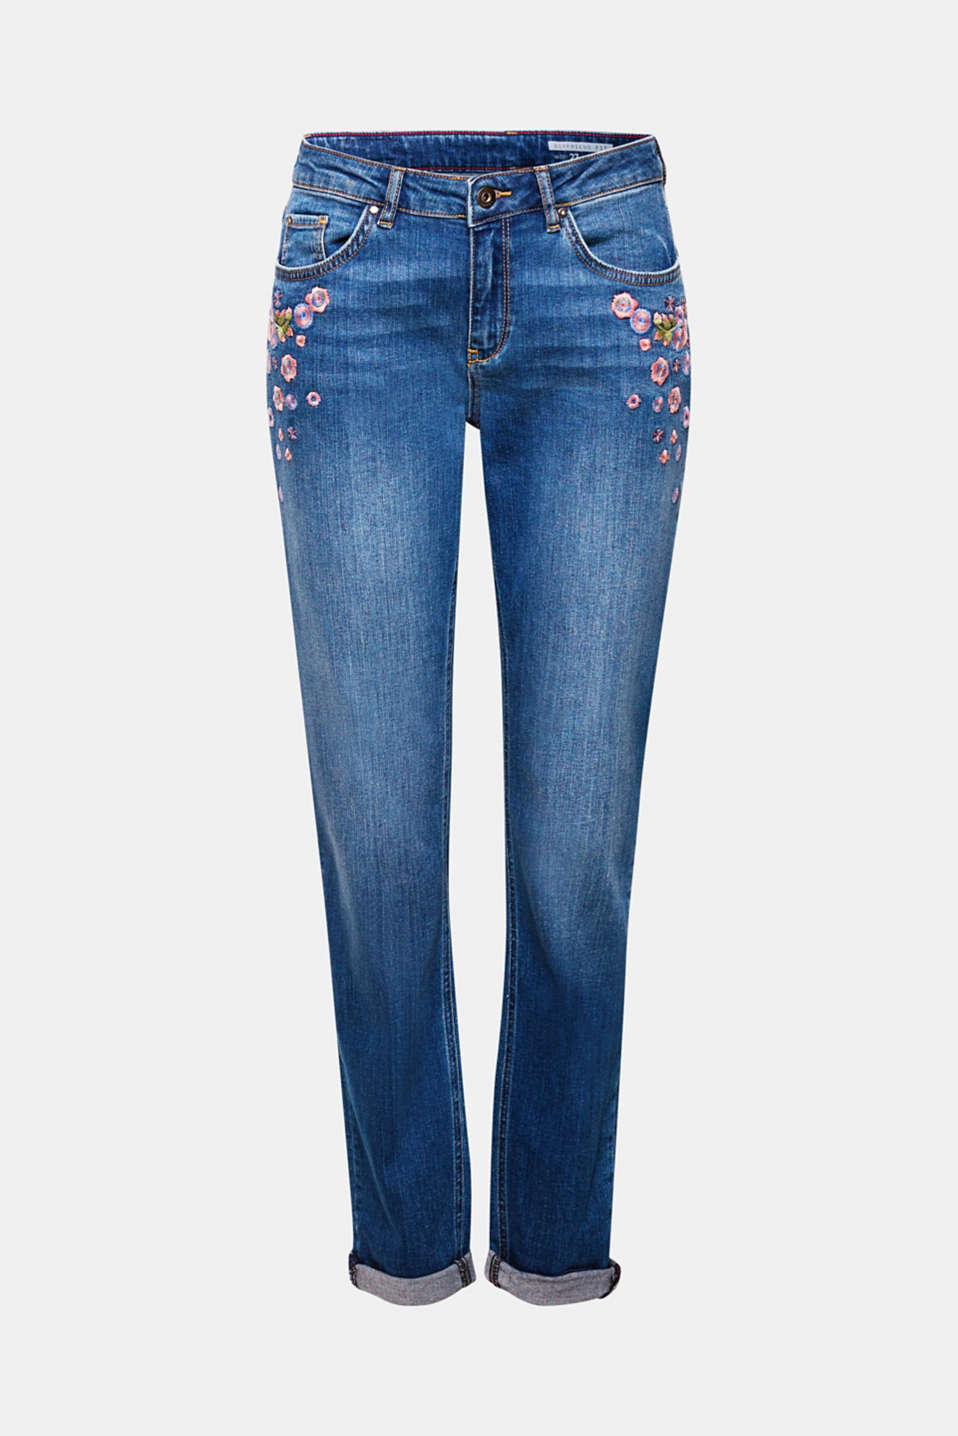 Your new denim star! The casual boyfriend cut and positioned embroidered flowers make these jeans a great fashion piece.